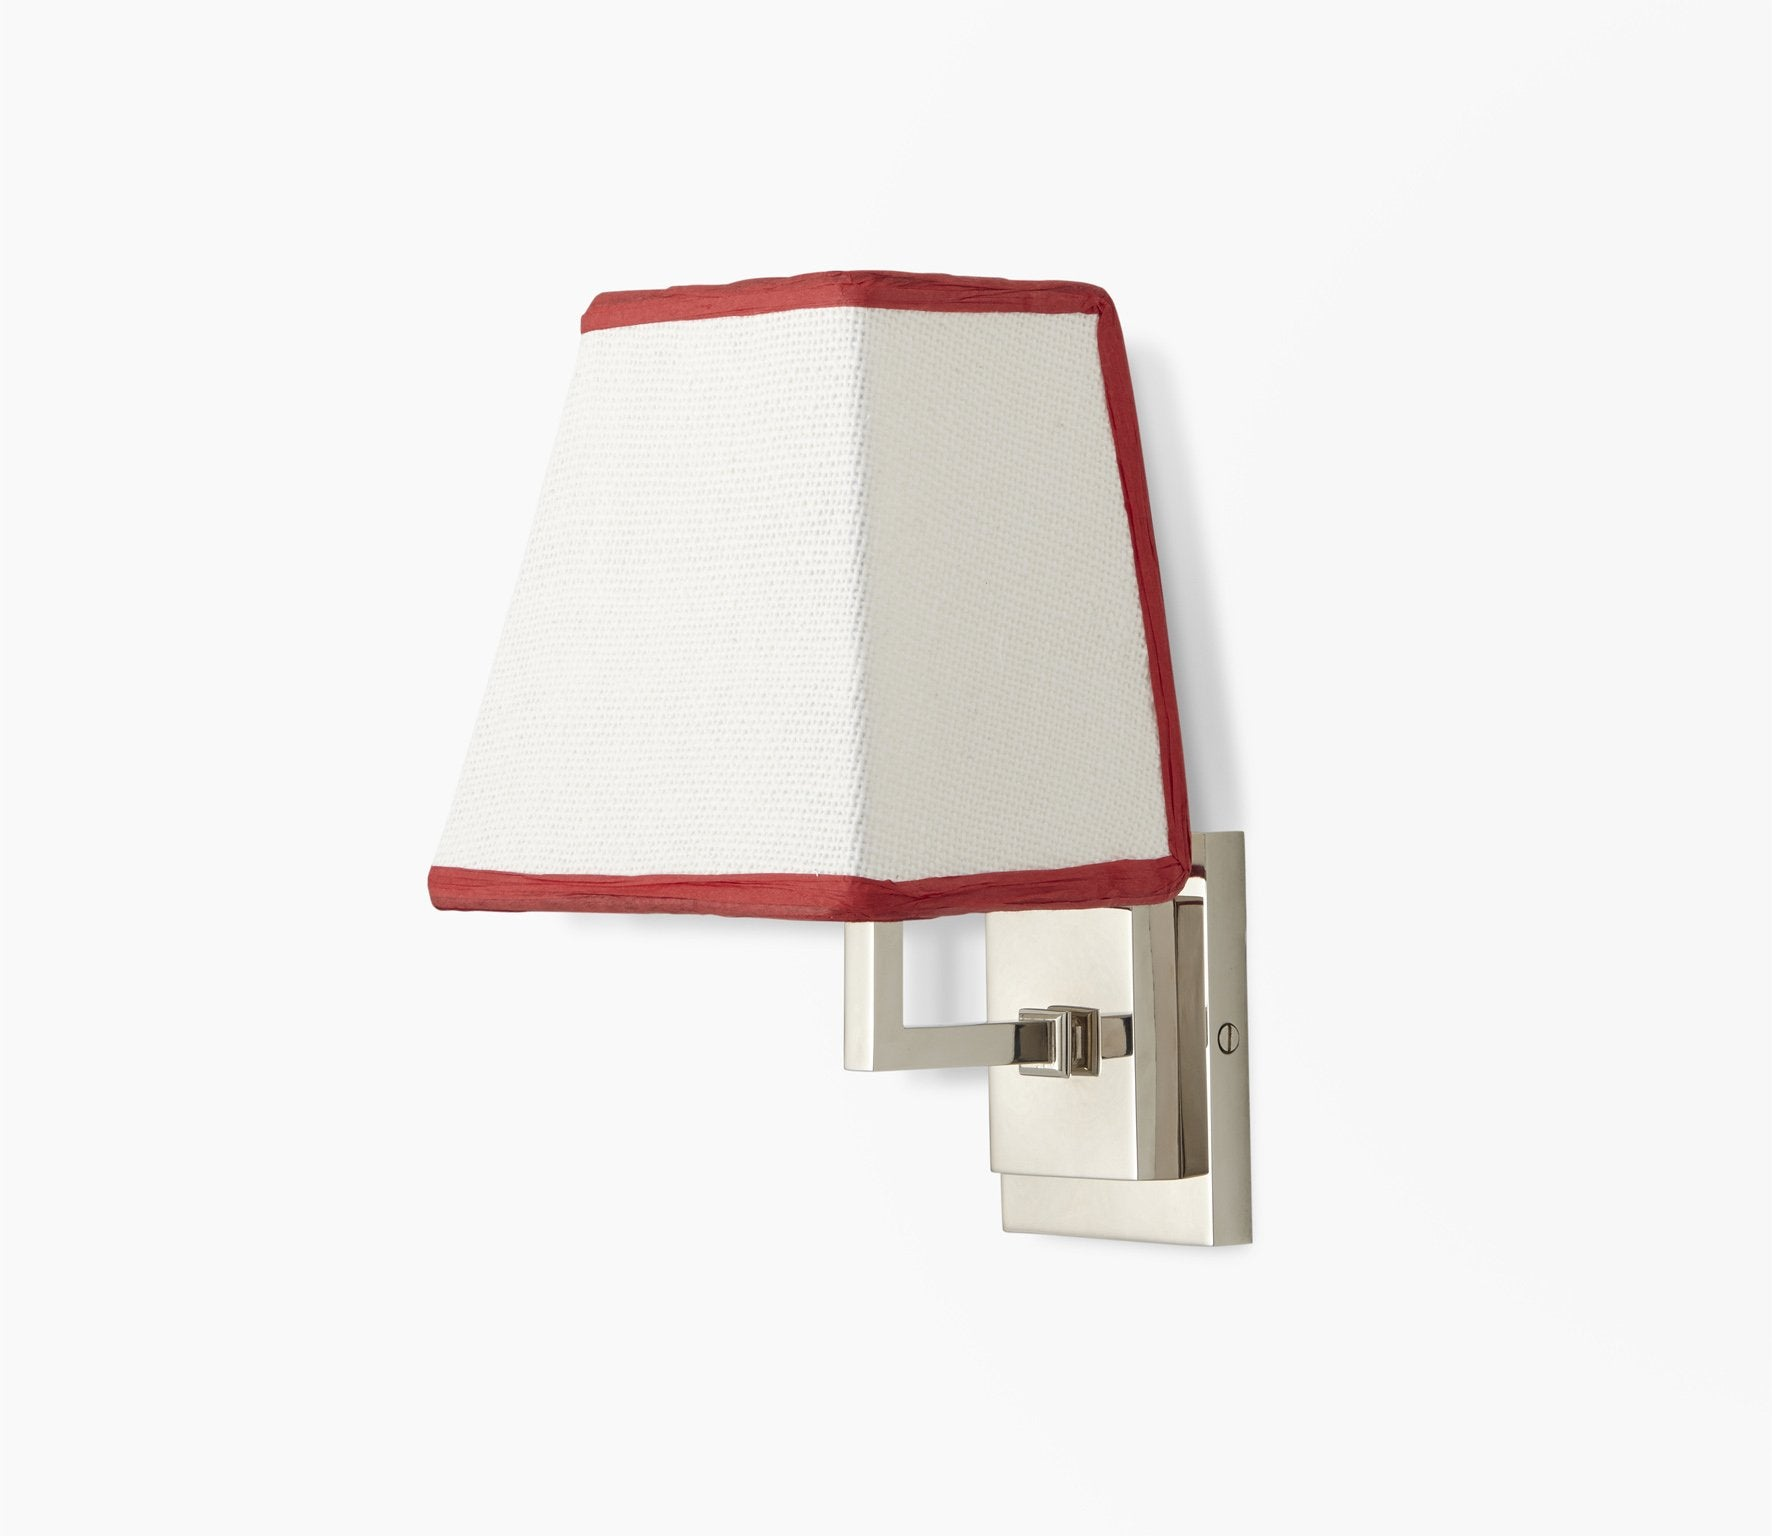 Parker Wall Light with Trapezoid Shade Product Image 1